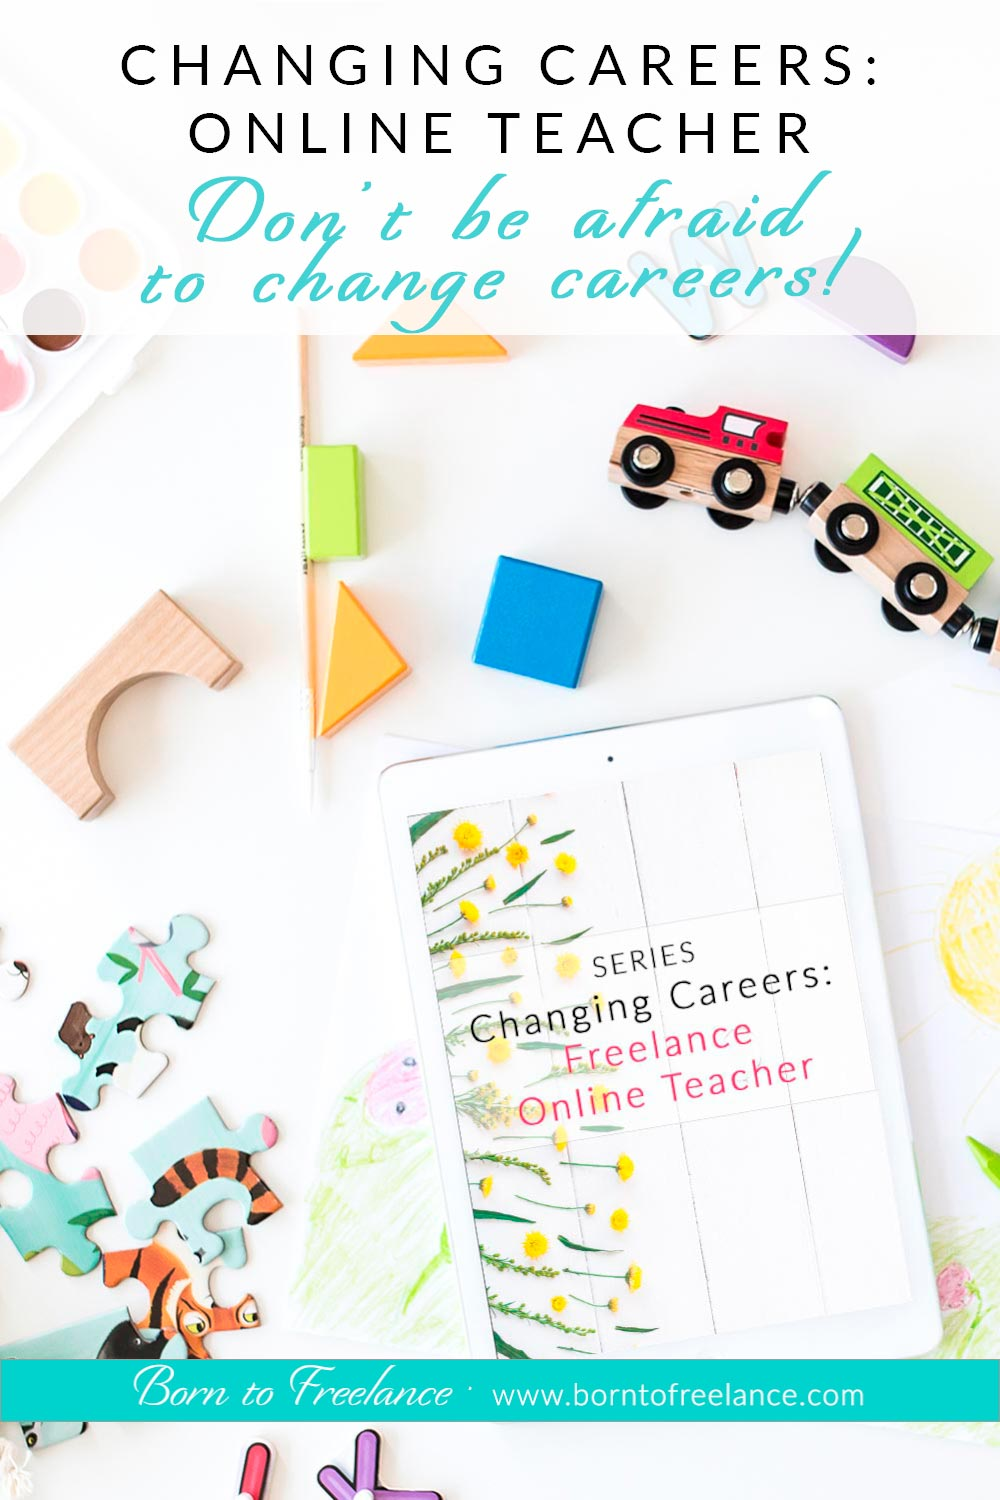 Online Teacher - Change Careers Series